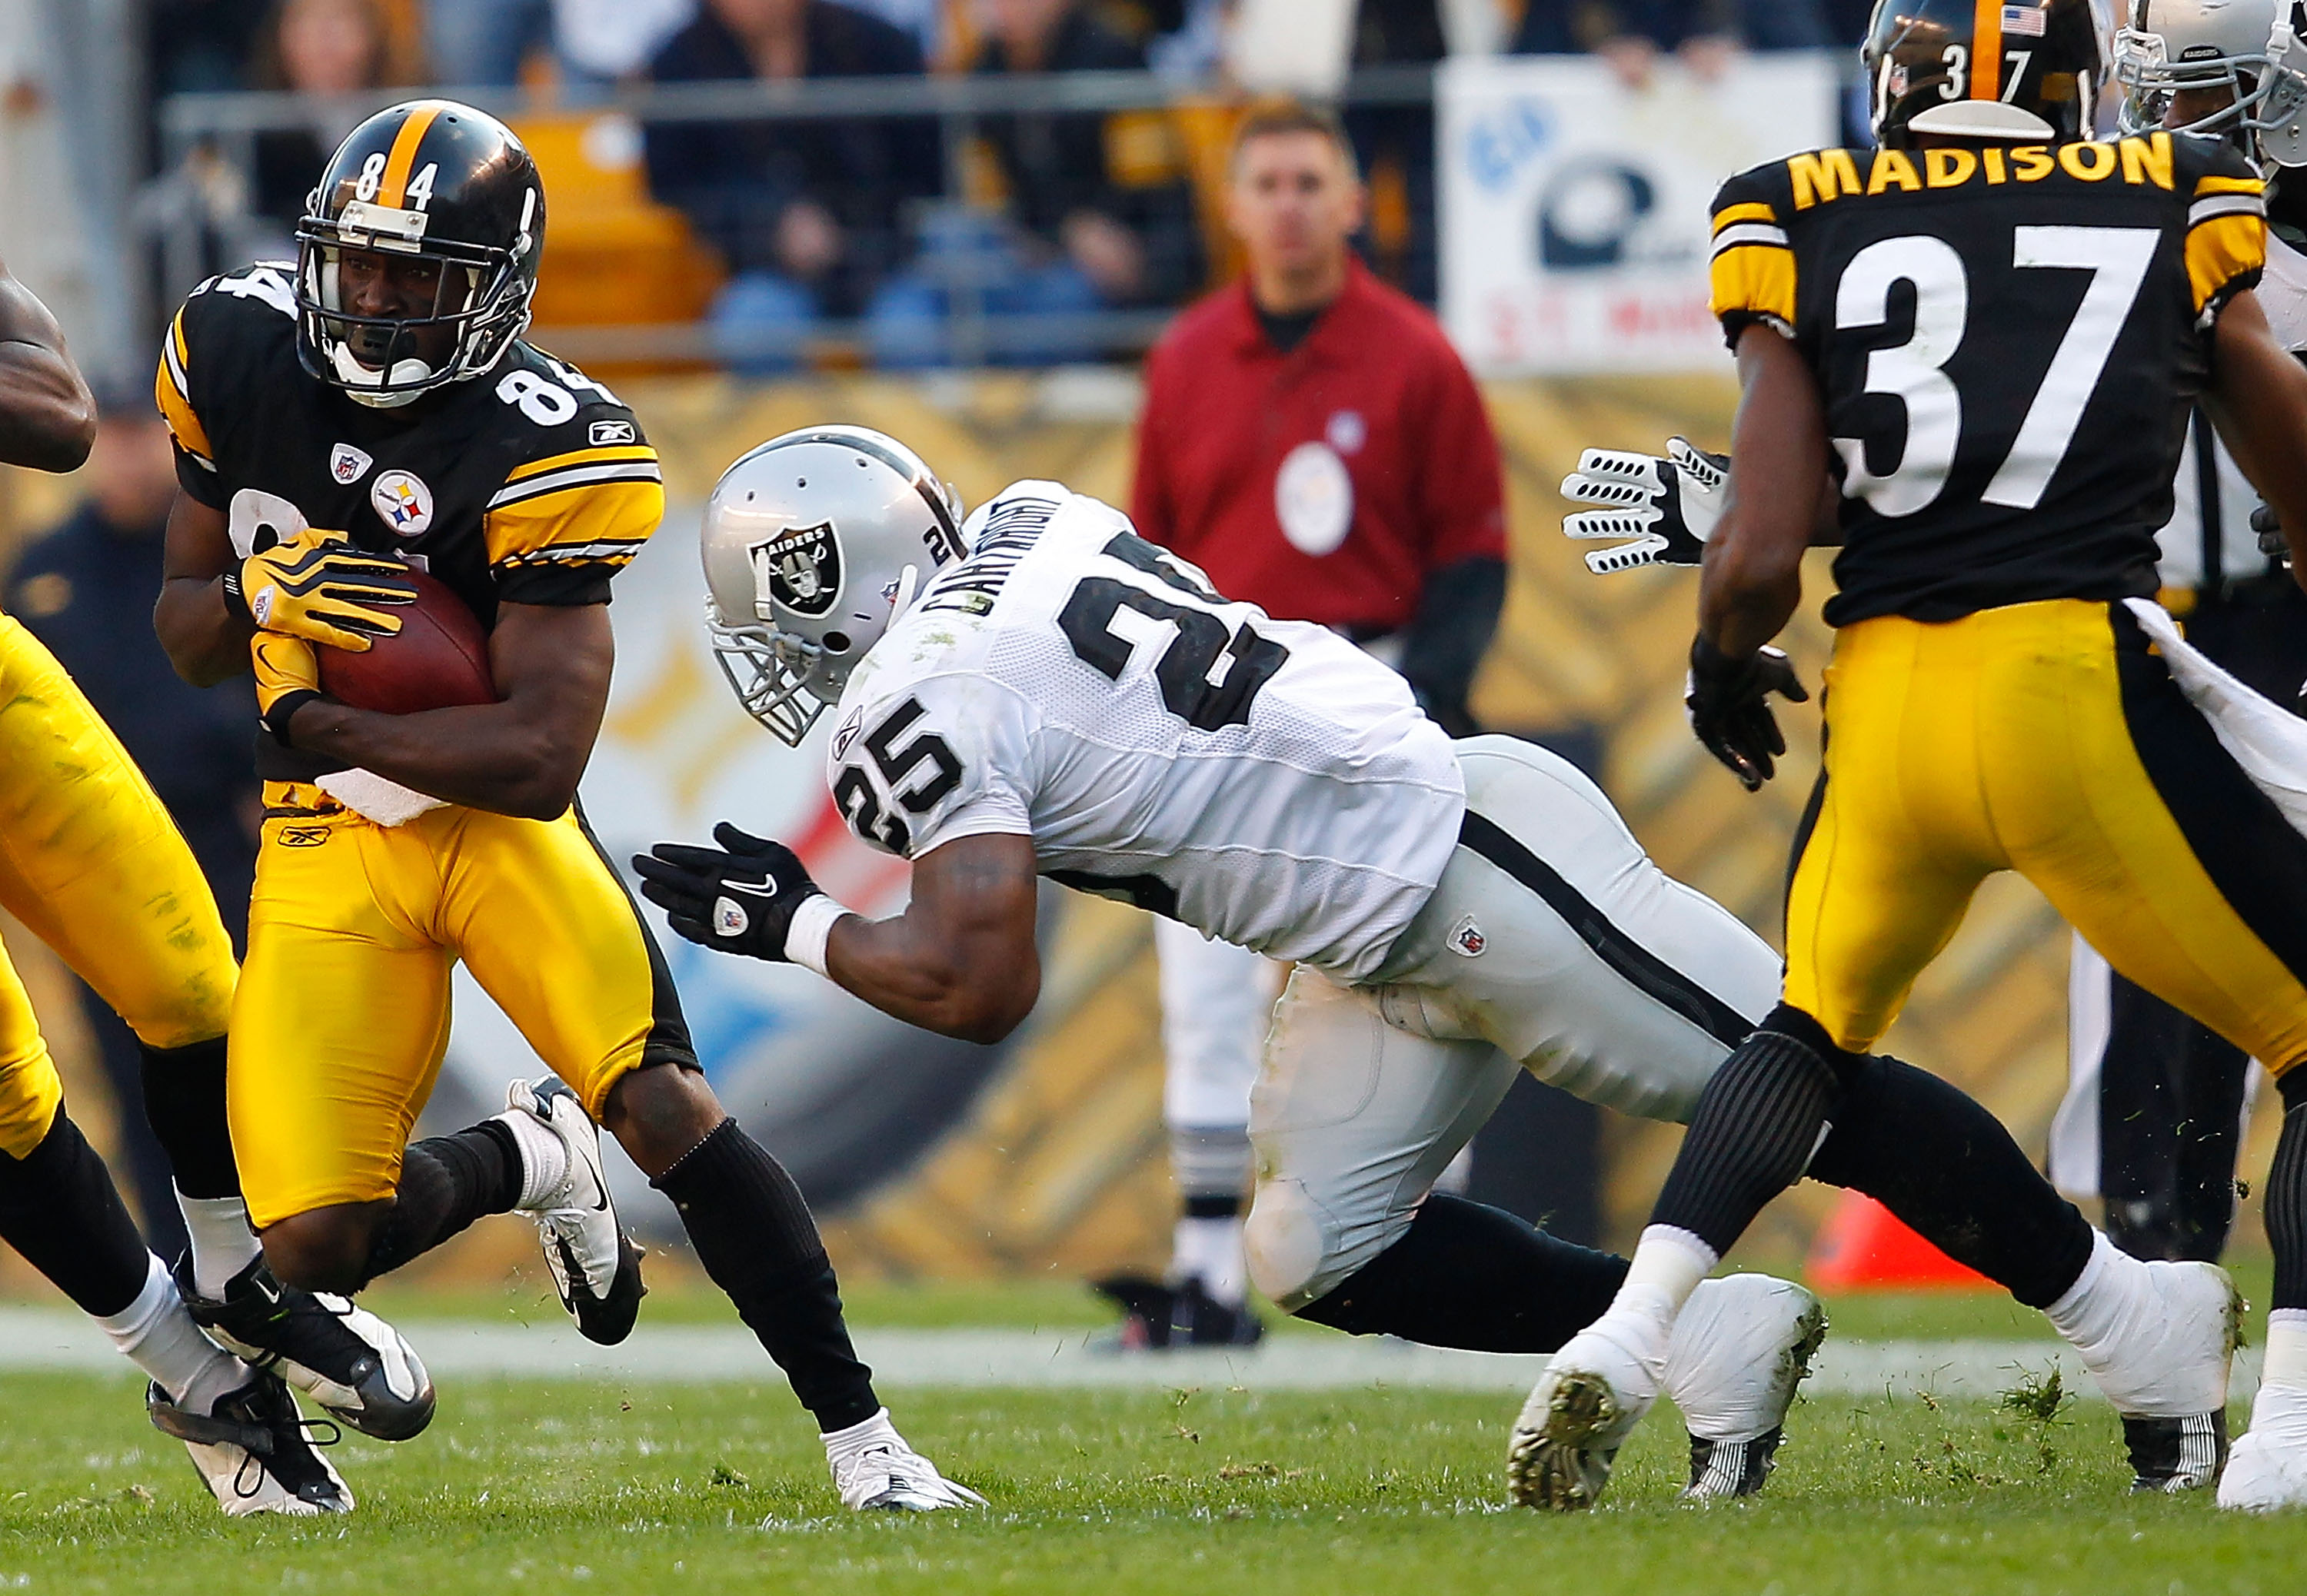 PITTSBURGH, PA - NOVEMBER 21:  Antonio Brown #84 of the Pittsburgh Steelers evades tacklers during a punt return against the Oakland Raiders during the game on November 21, 2010 at Heinz Field in Pittsburgh, Pennsylvania.  (Photo by Jared Wickerham/Getty